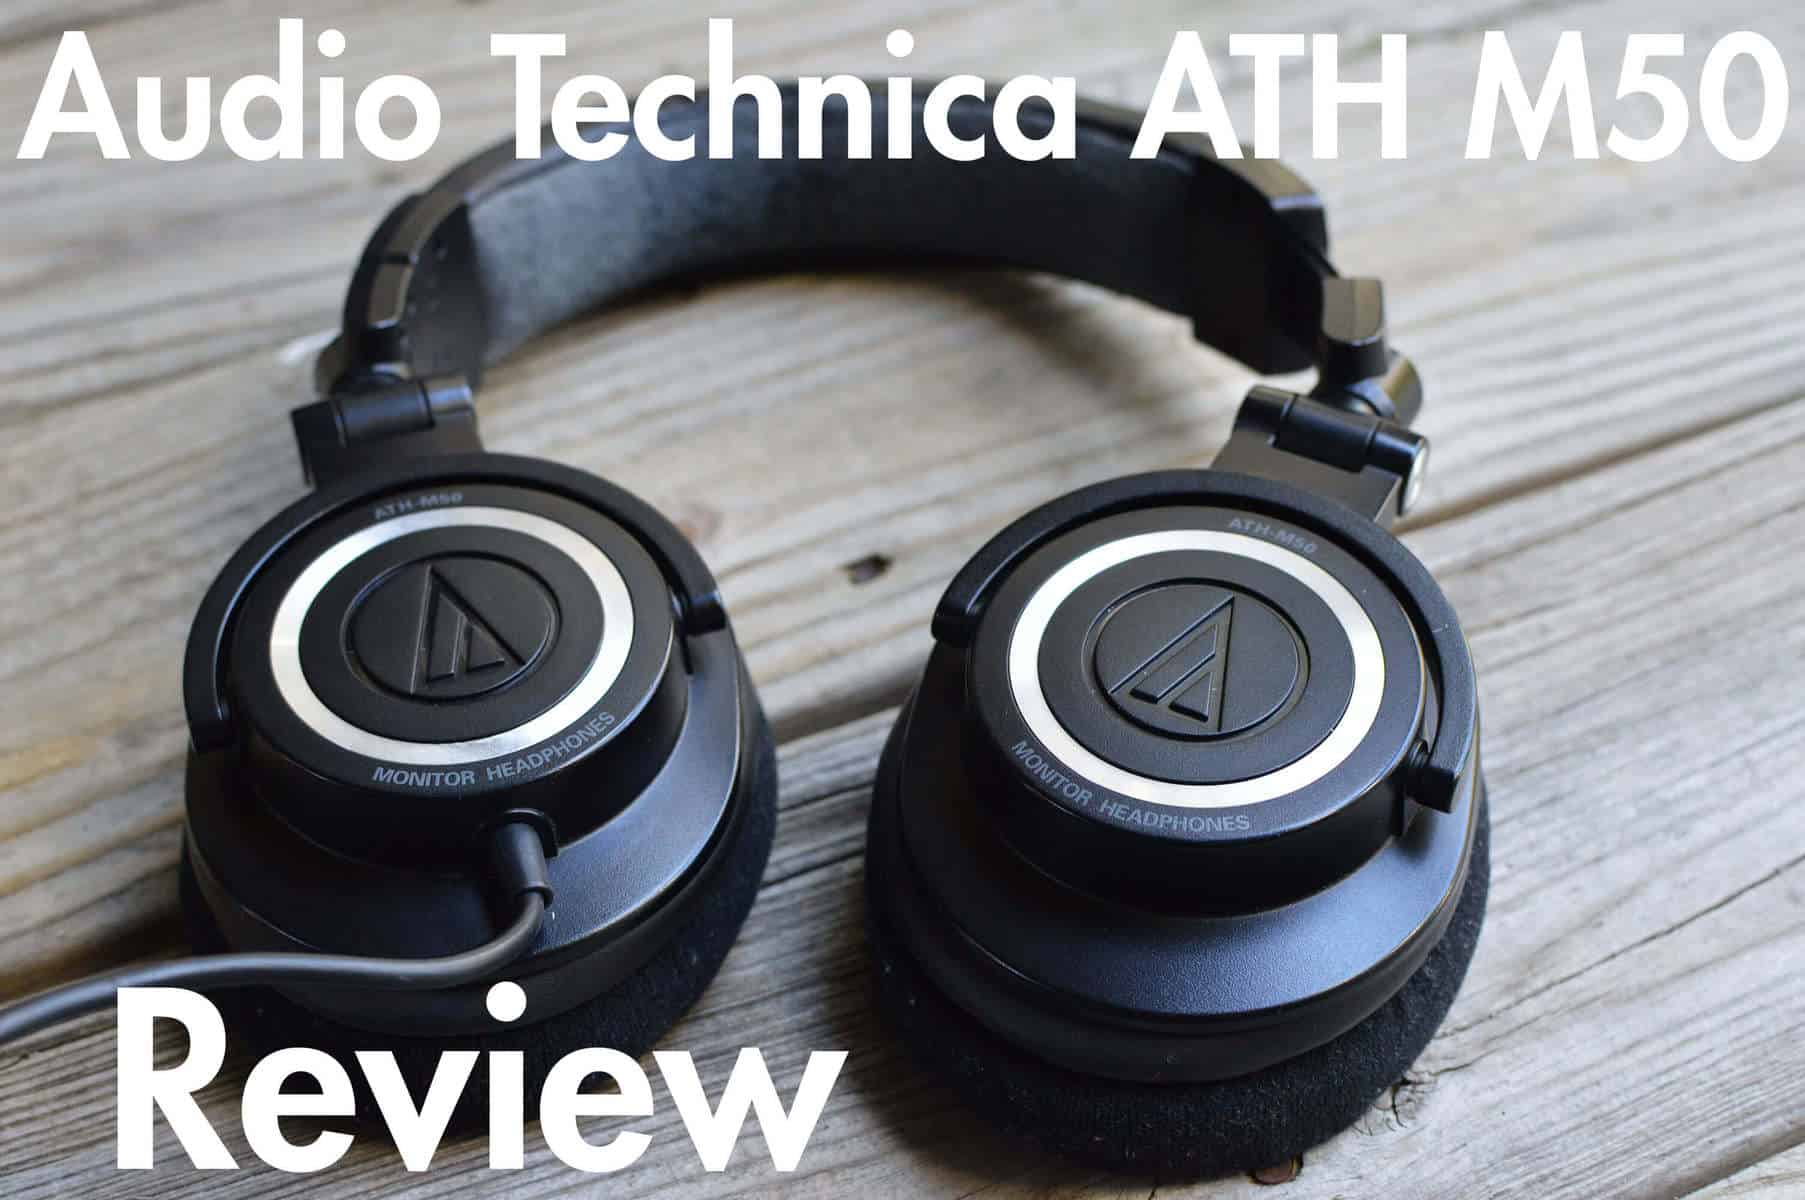 Audio Technica ATH M50 Review